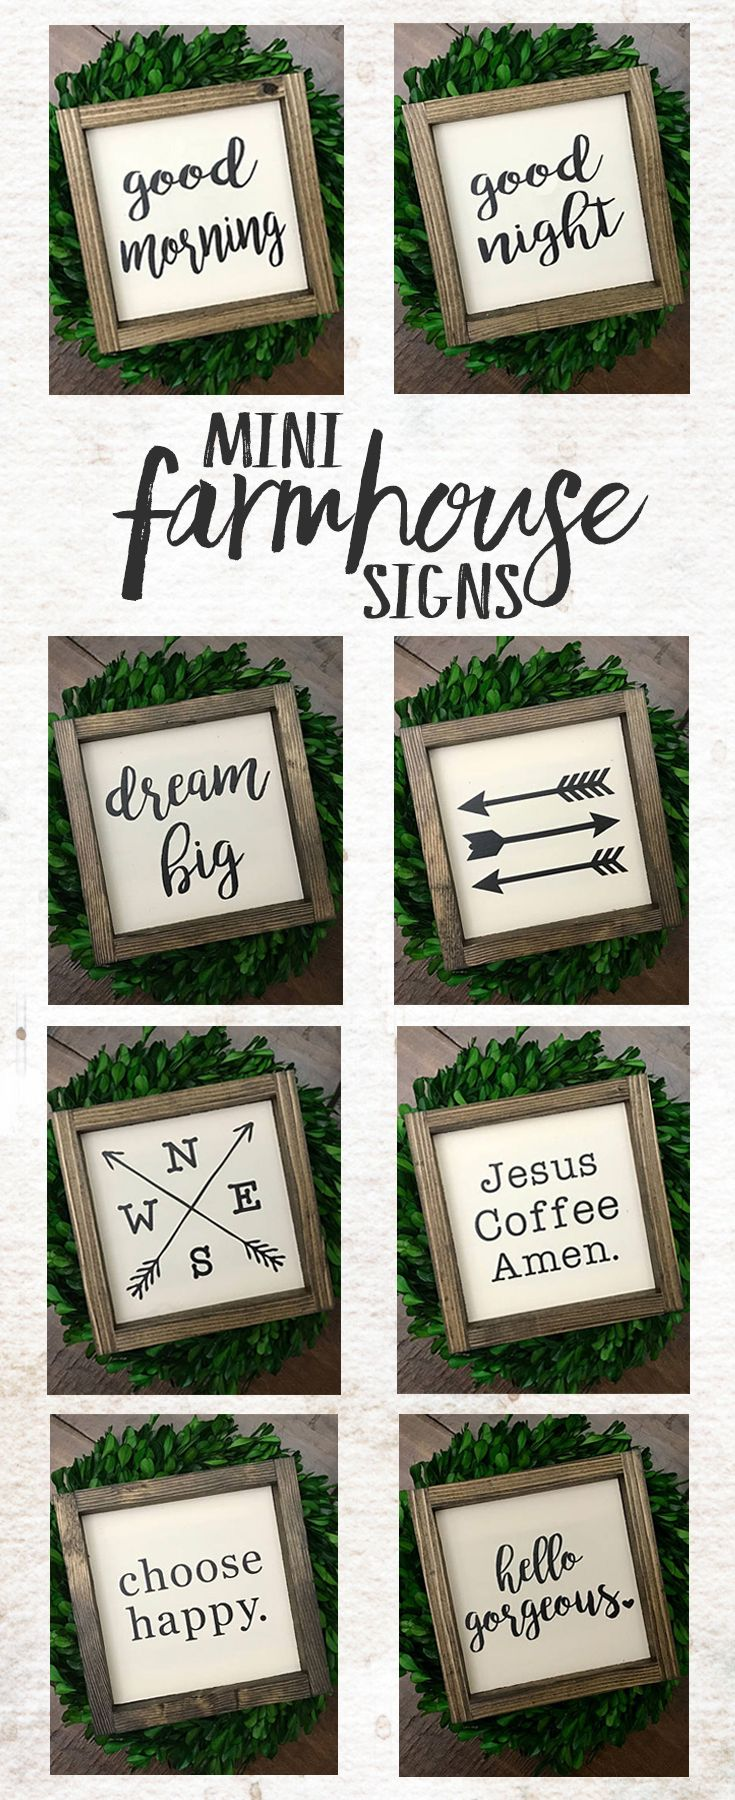 These signs are the perfect size for a gallery wall! One or several would look great! Farmhouse Wood Sign | Farmhouse Style Decor | Farmhouse Sign | Dream Big Hello Gorgeous Arrow Choose Happy | Rustic sign | Rustic wall decor | gift idea #ad